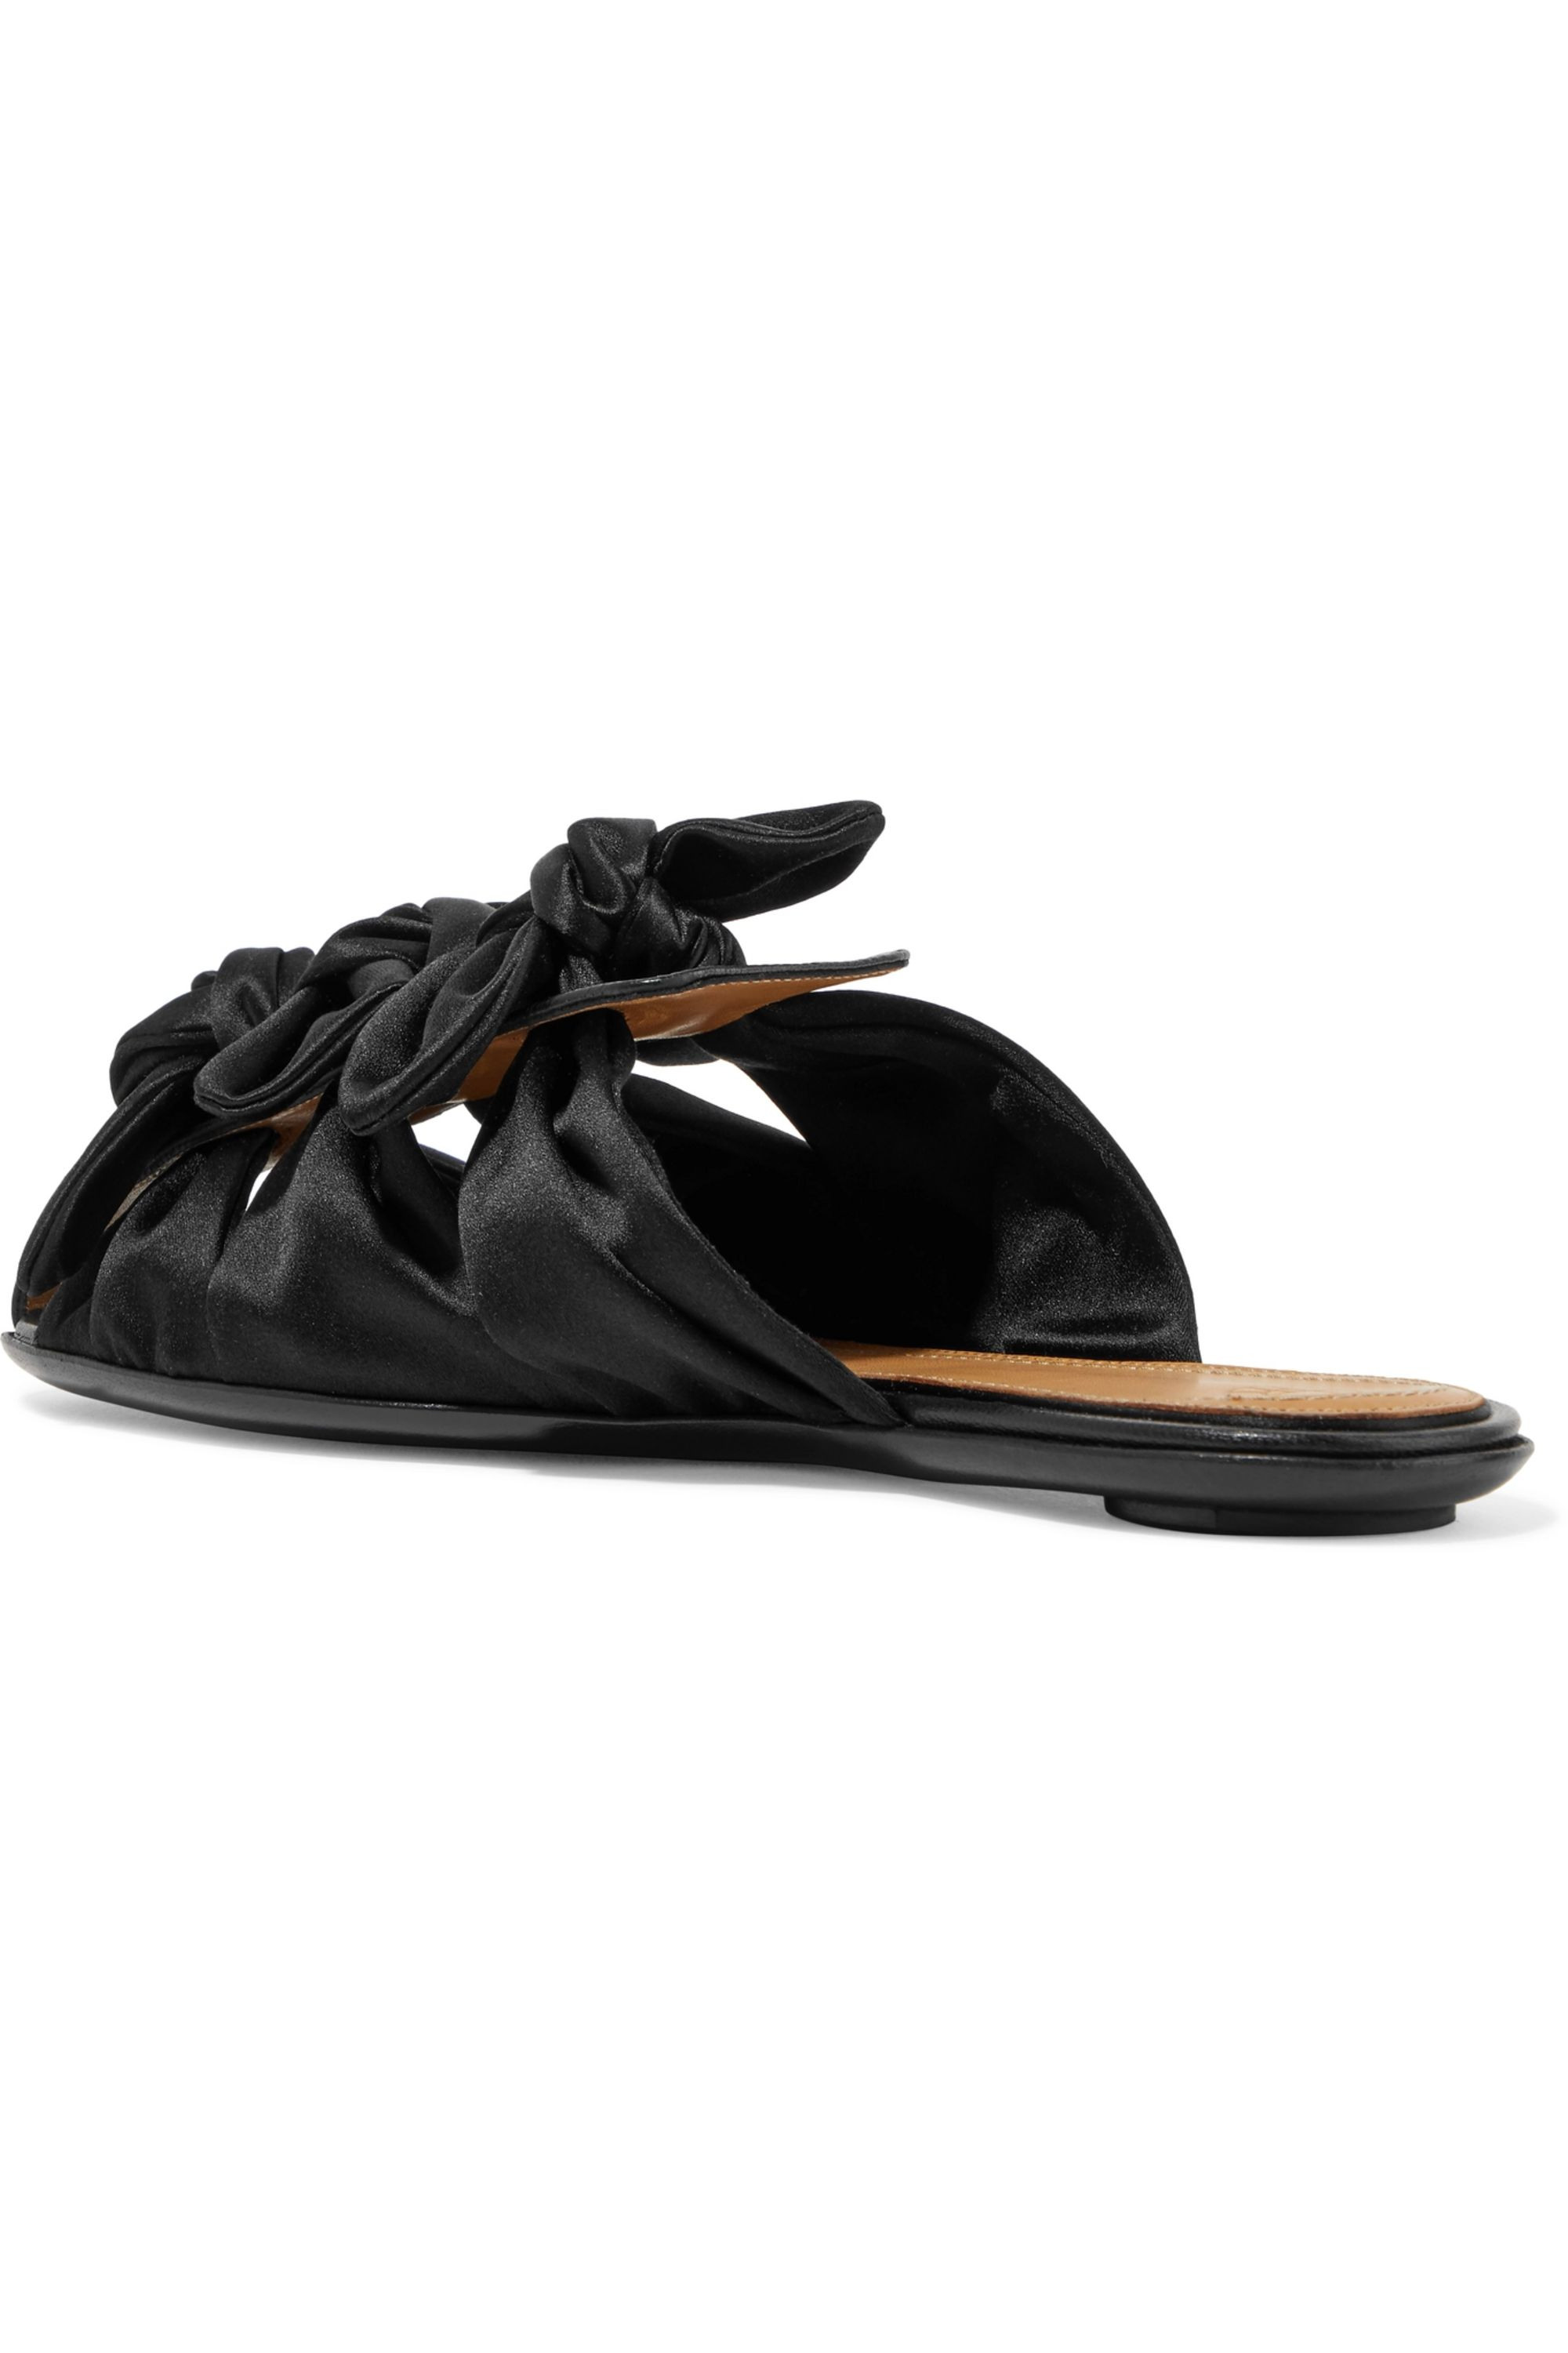 The Row Capri bow-embellished satin and leather slippers